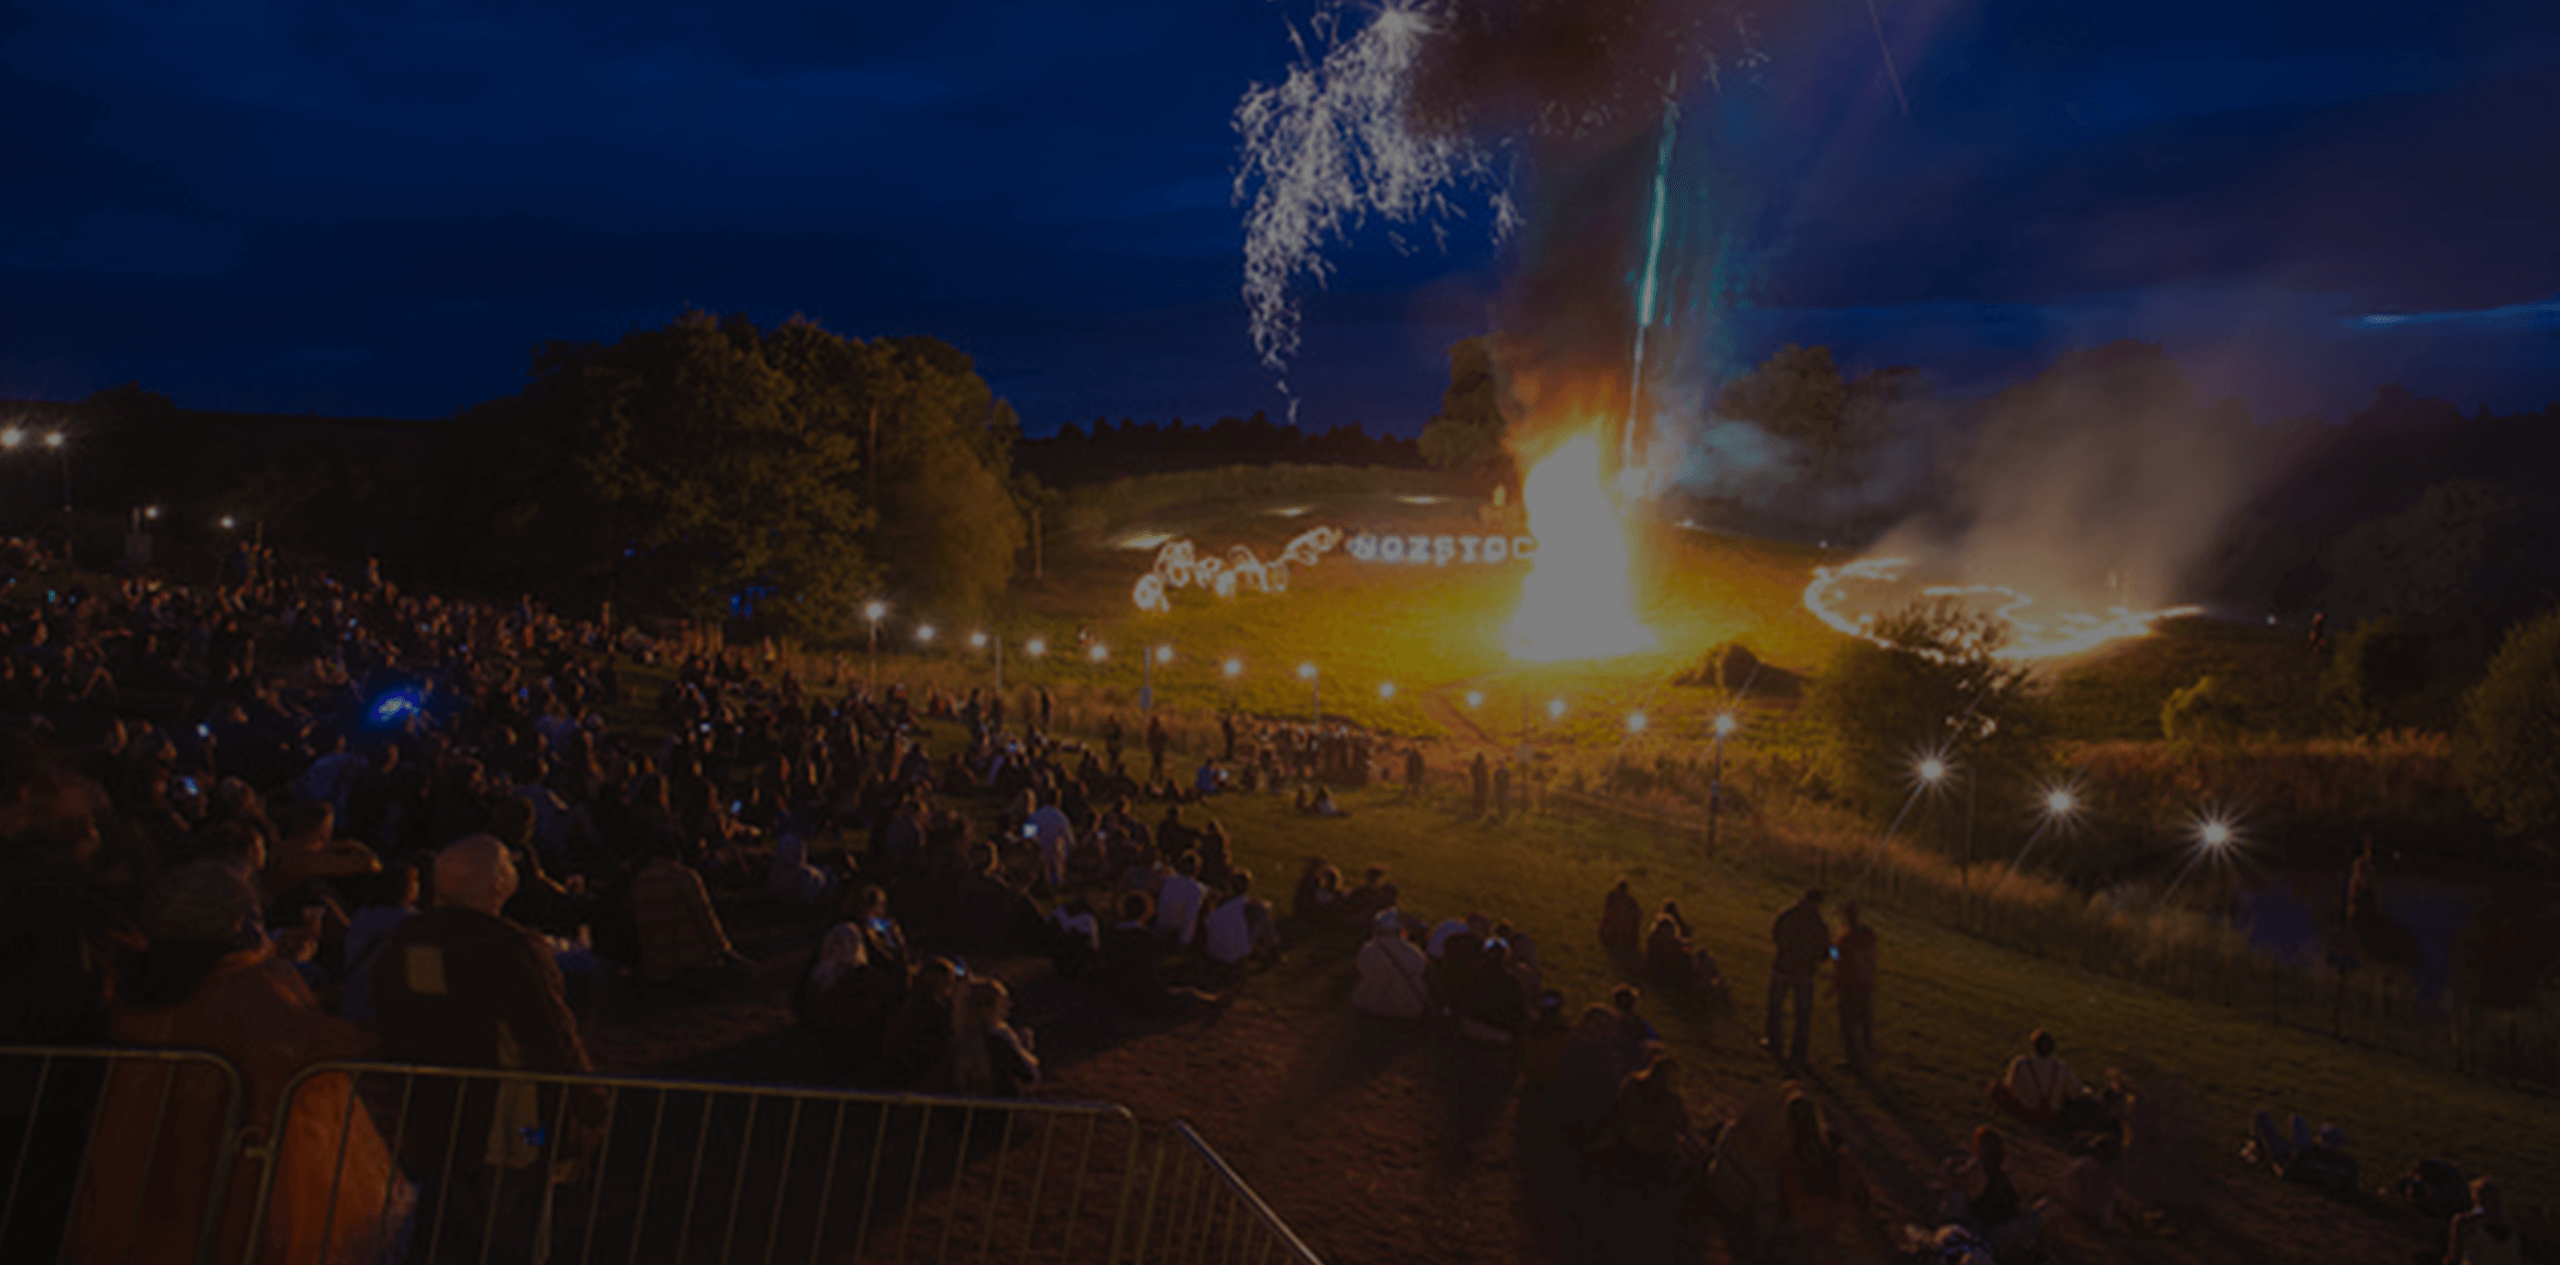 Join the team & be part of  Nozstock 2015